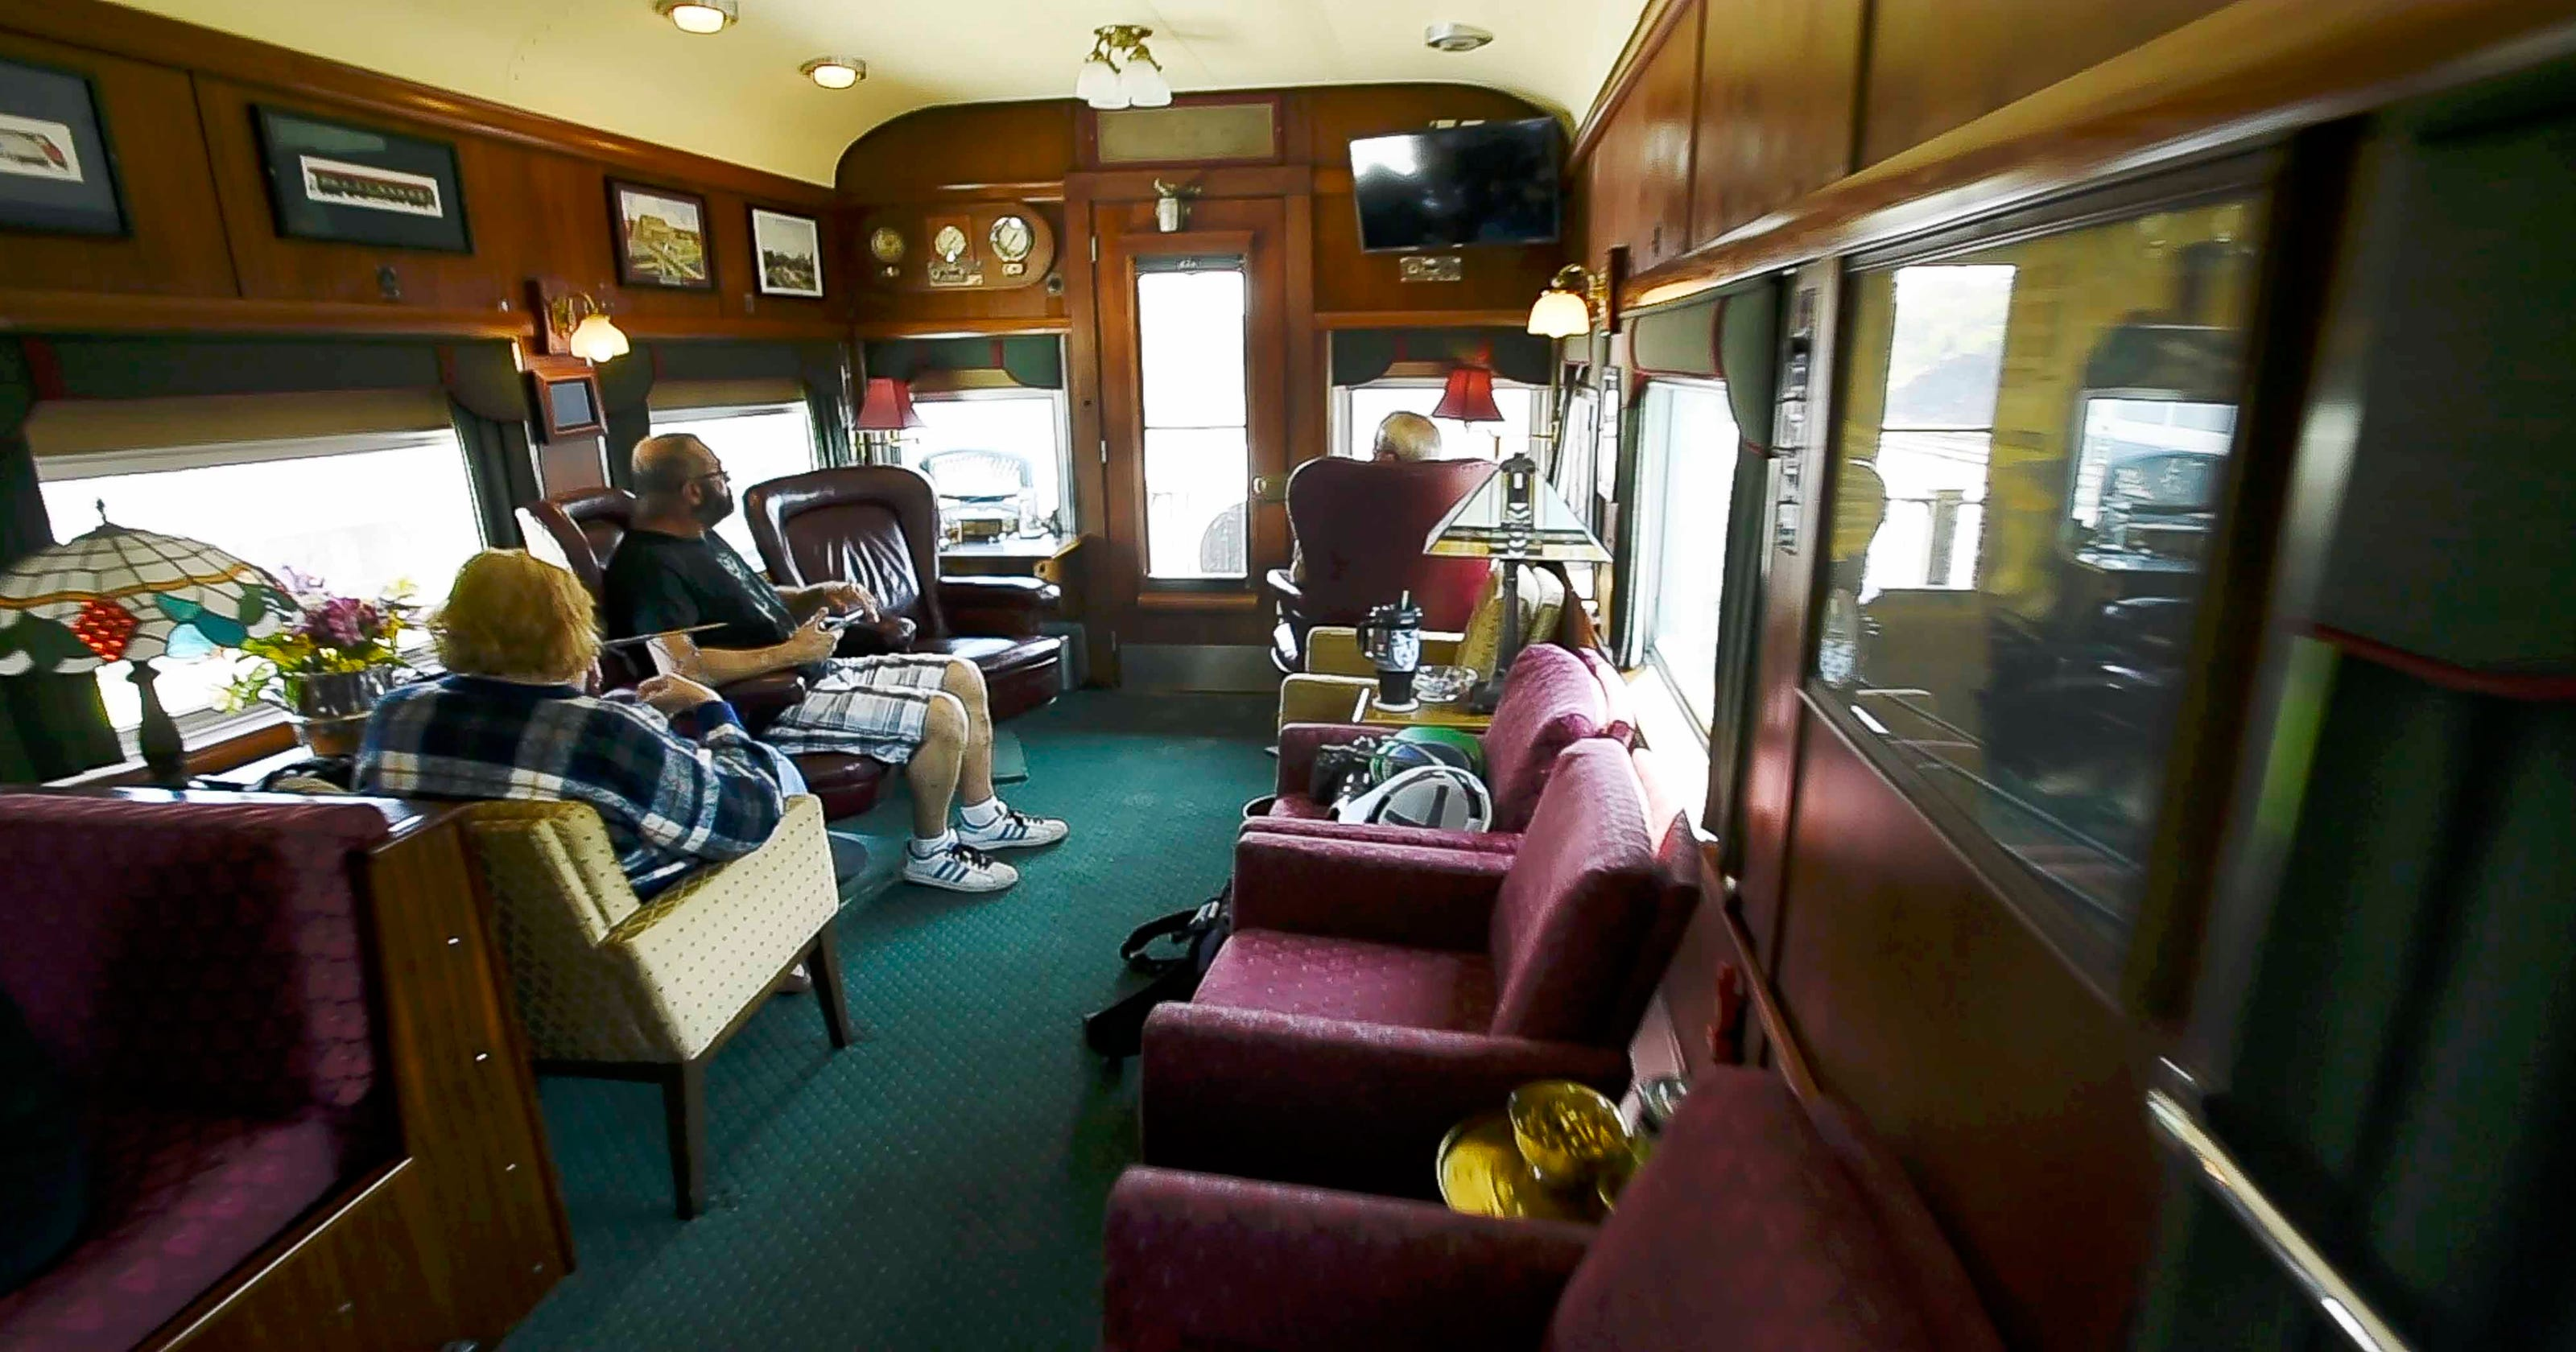 Private train cars: A look inside these ritzy digs